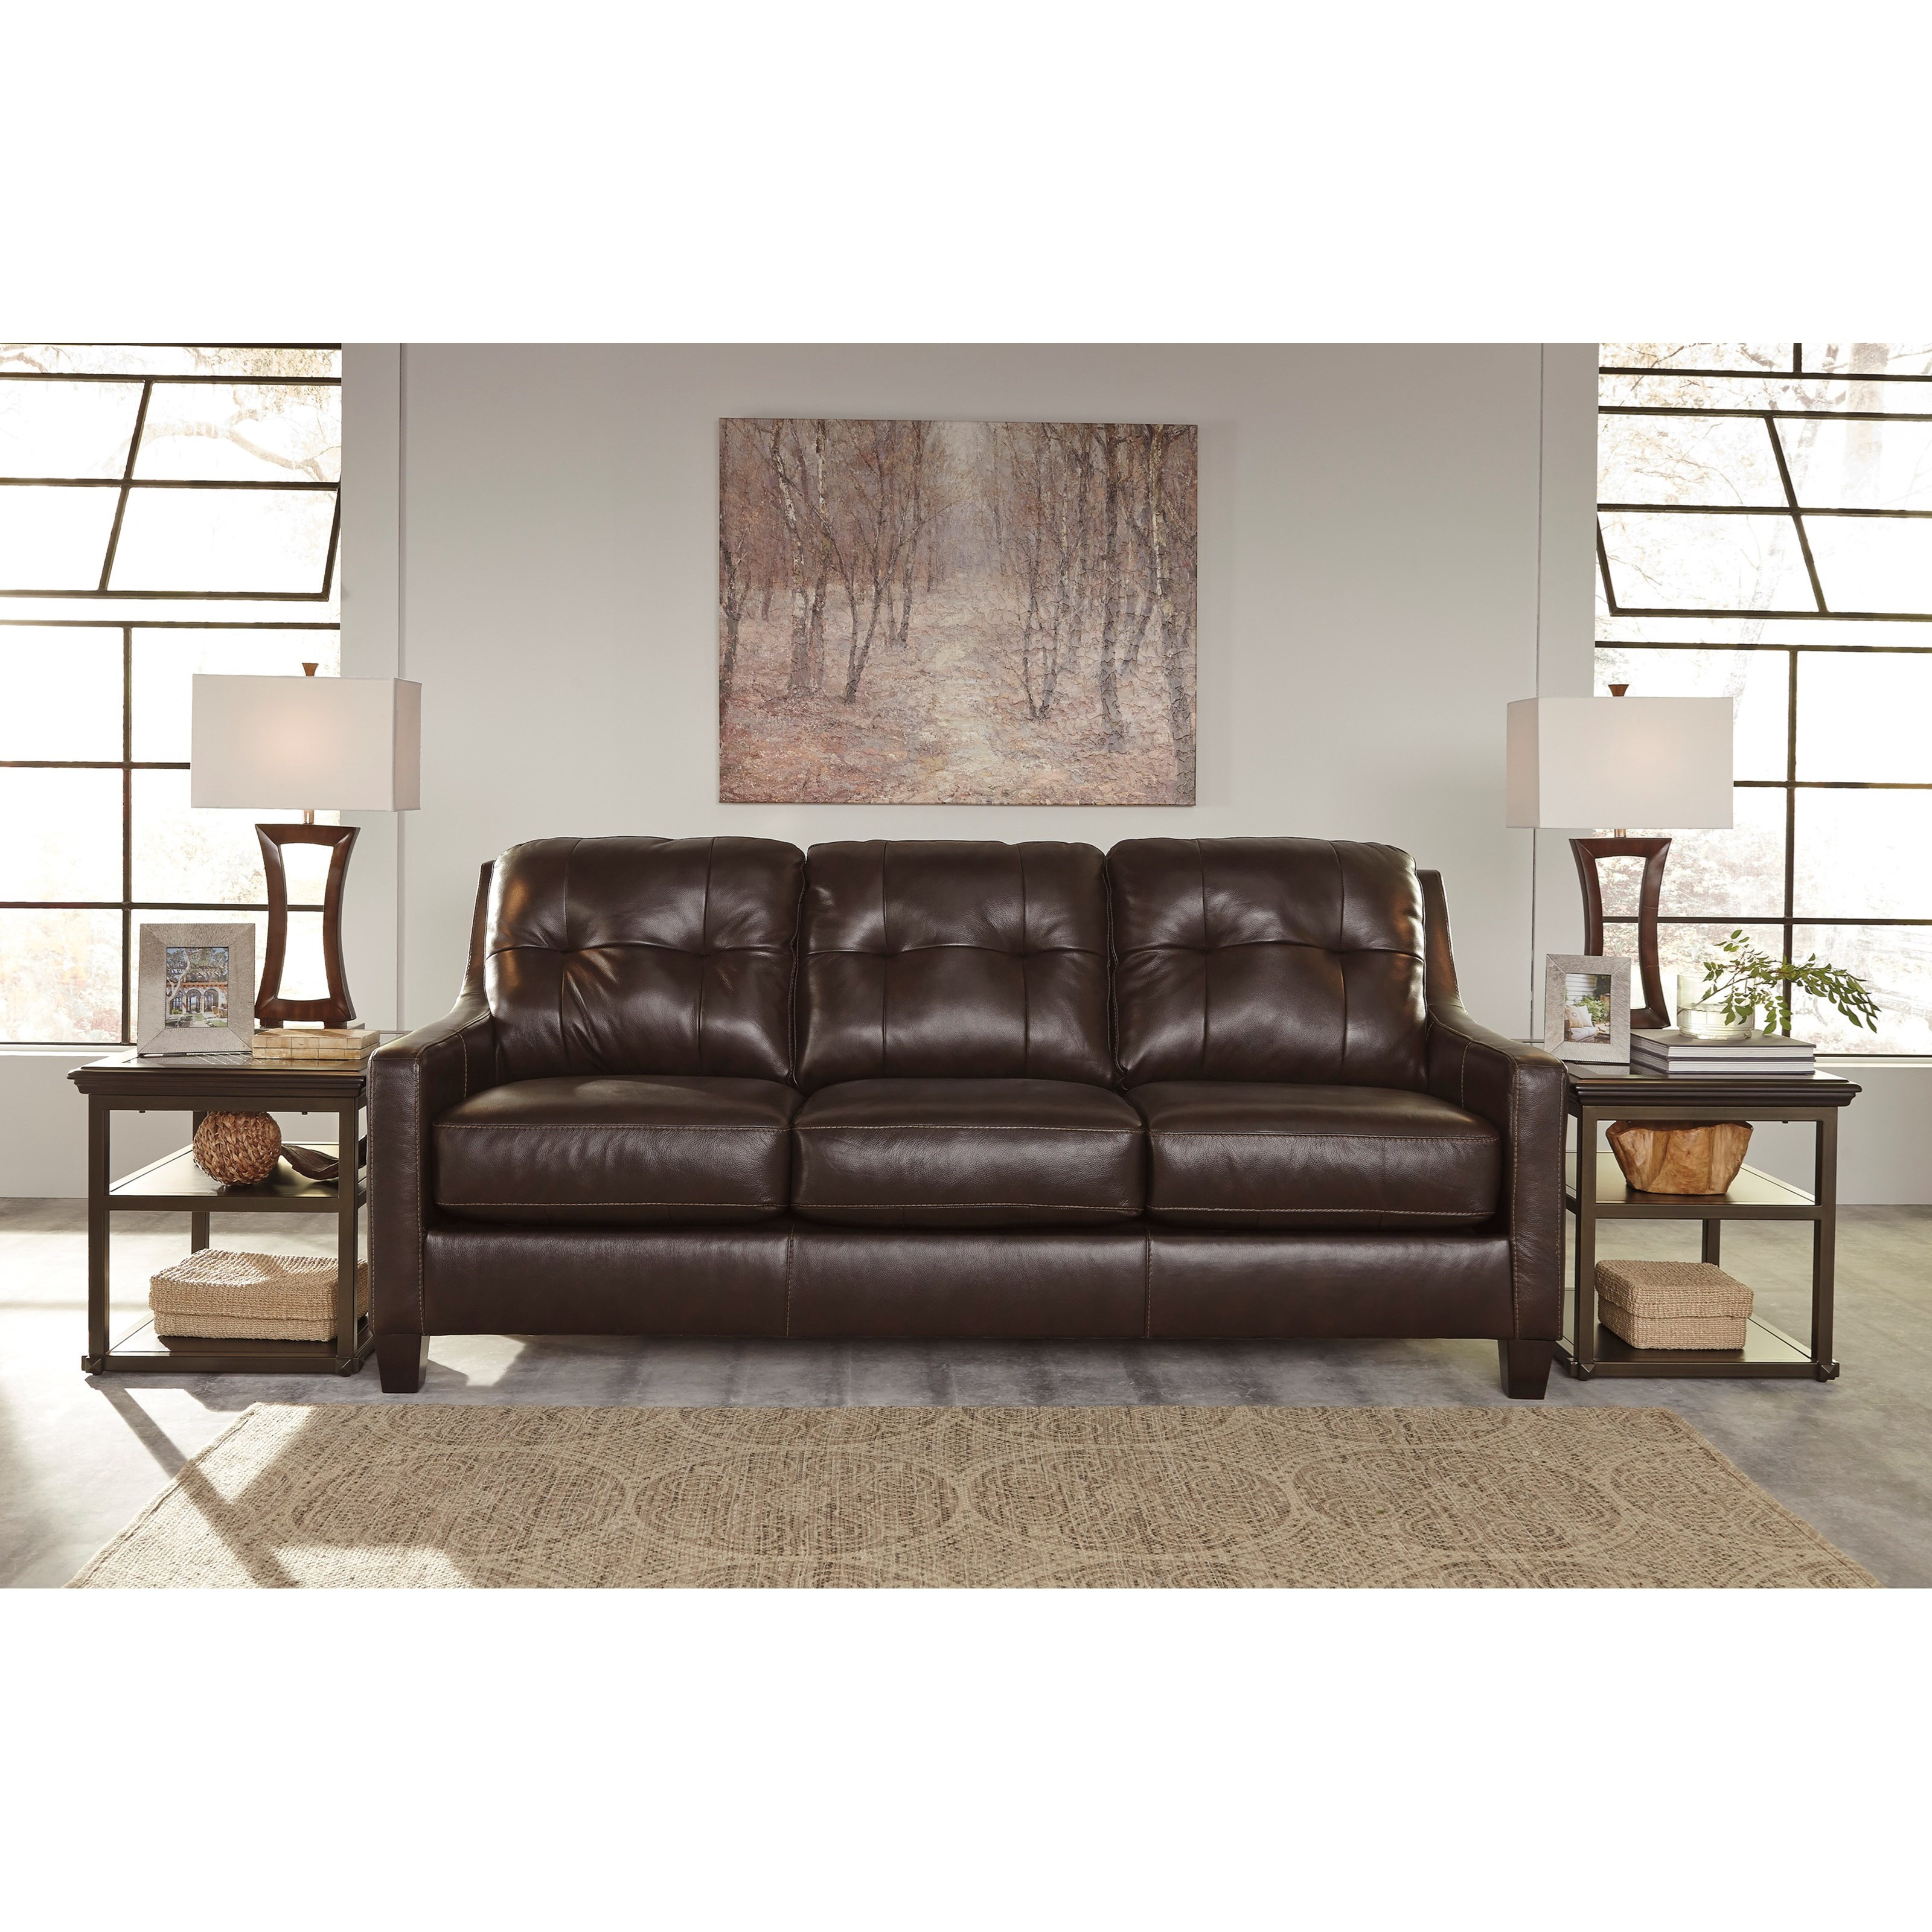 Signature Design By Ashley O 39 Kean 5910538 Contemporary Leather Match Sofa With Tufted Back